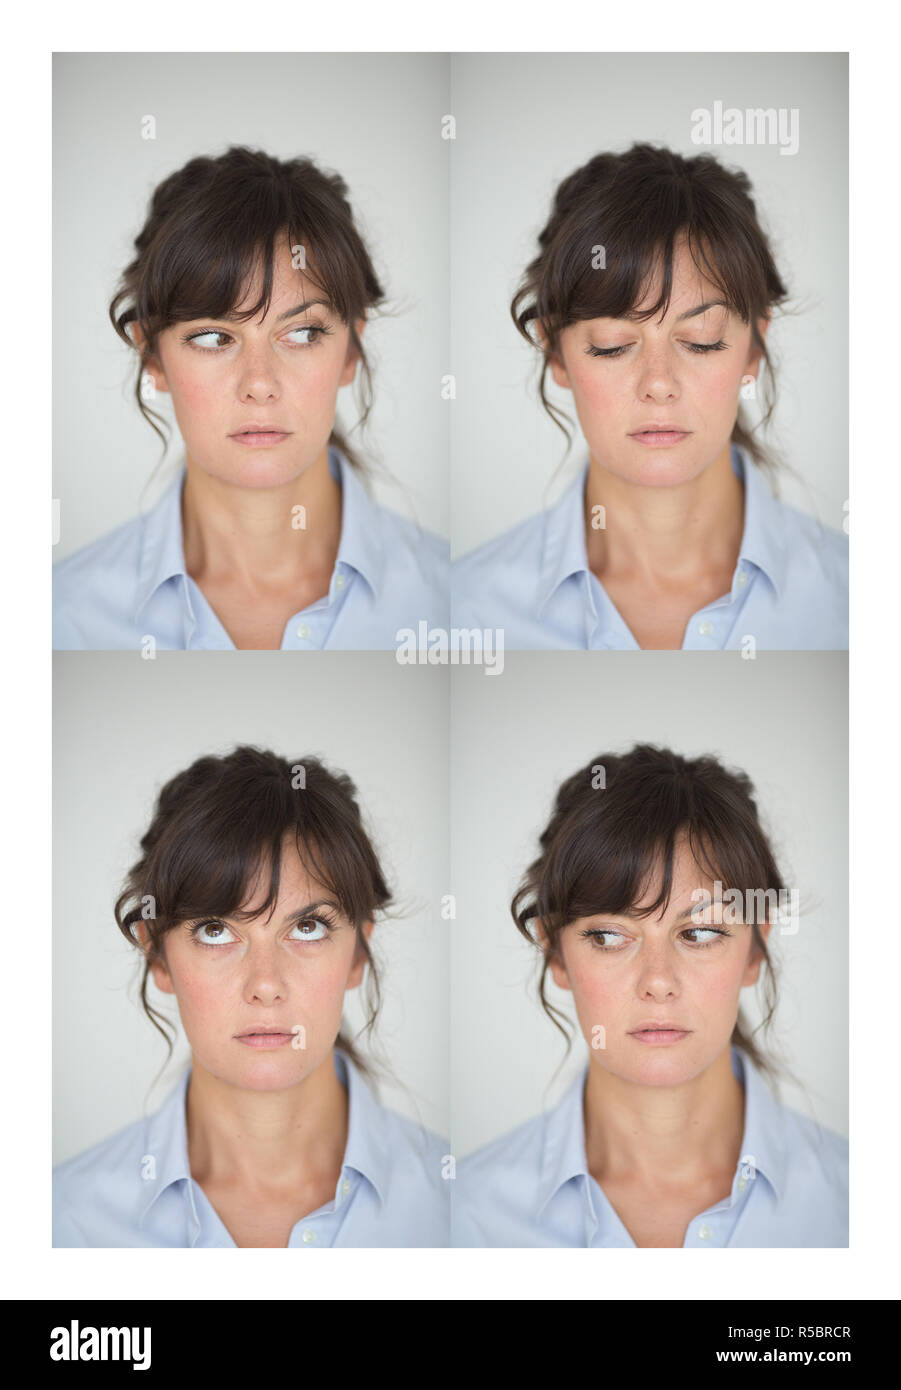 Yoga for eyes : Method consisting in excercising the eye muscles in order to releive the ocular tensions. - Stock Image